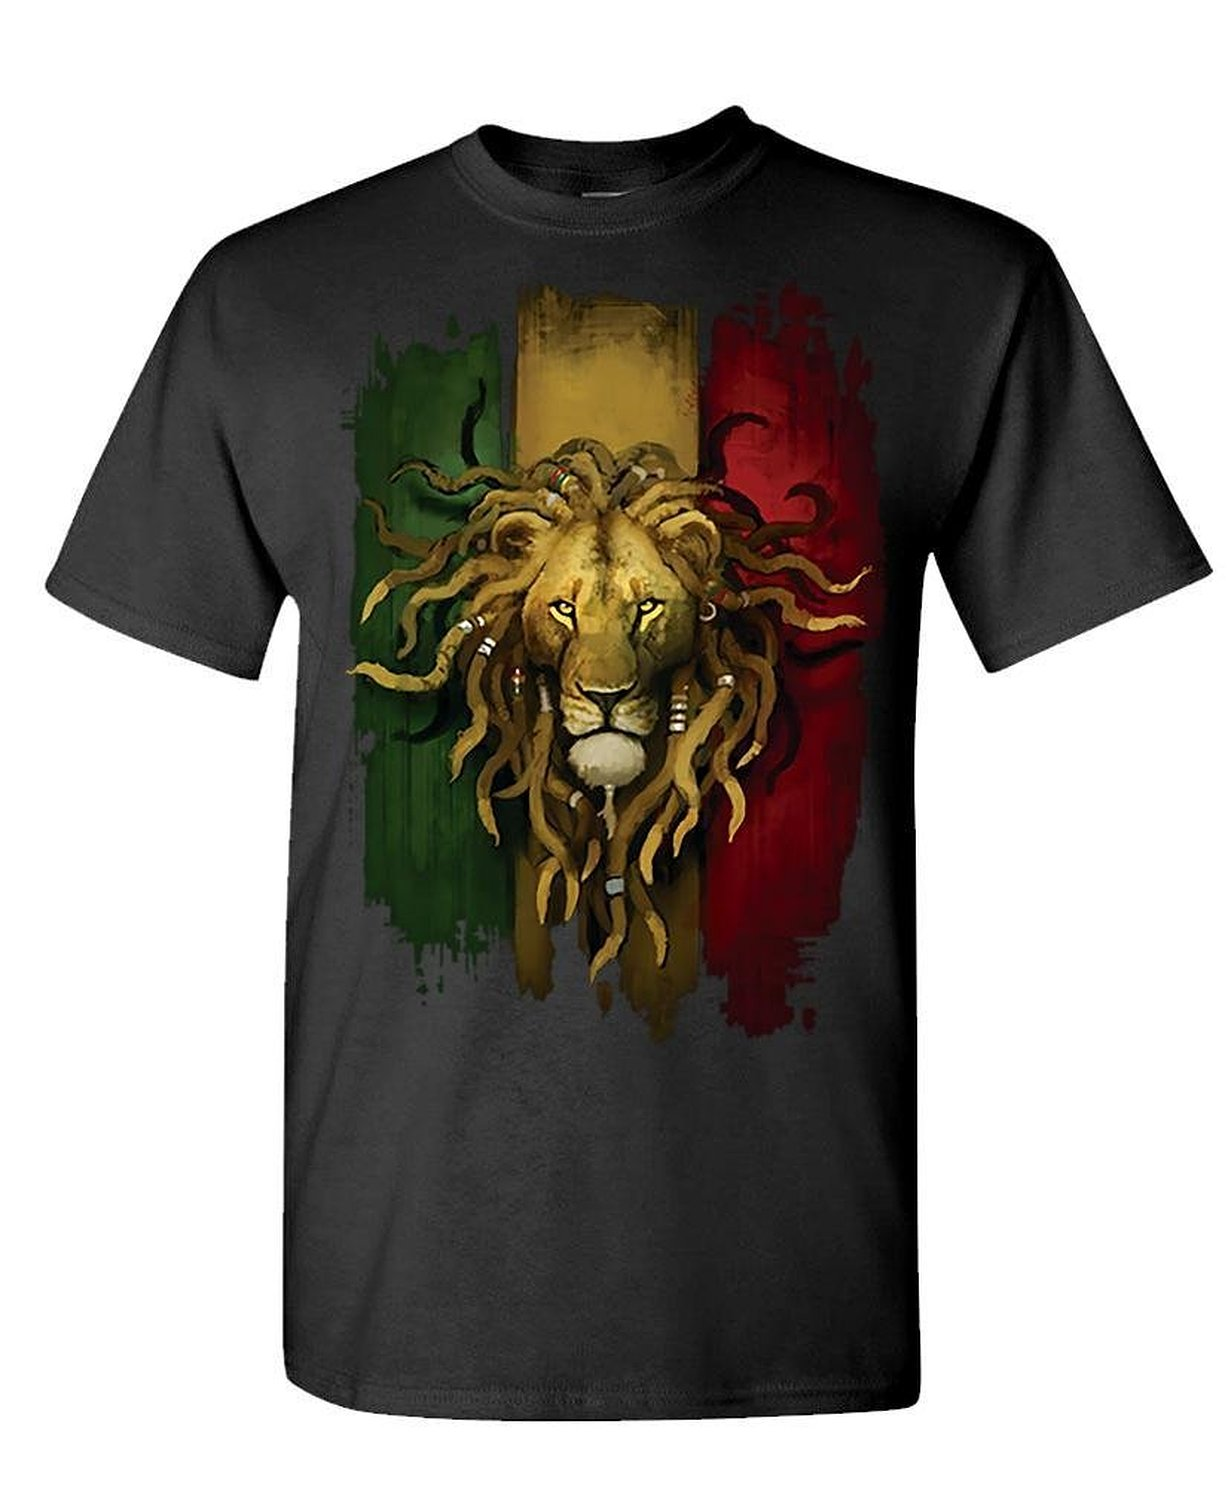 Online Buy Wholesale Funny Shirts Cheap From China Funny